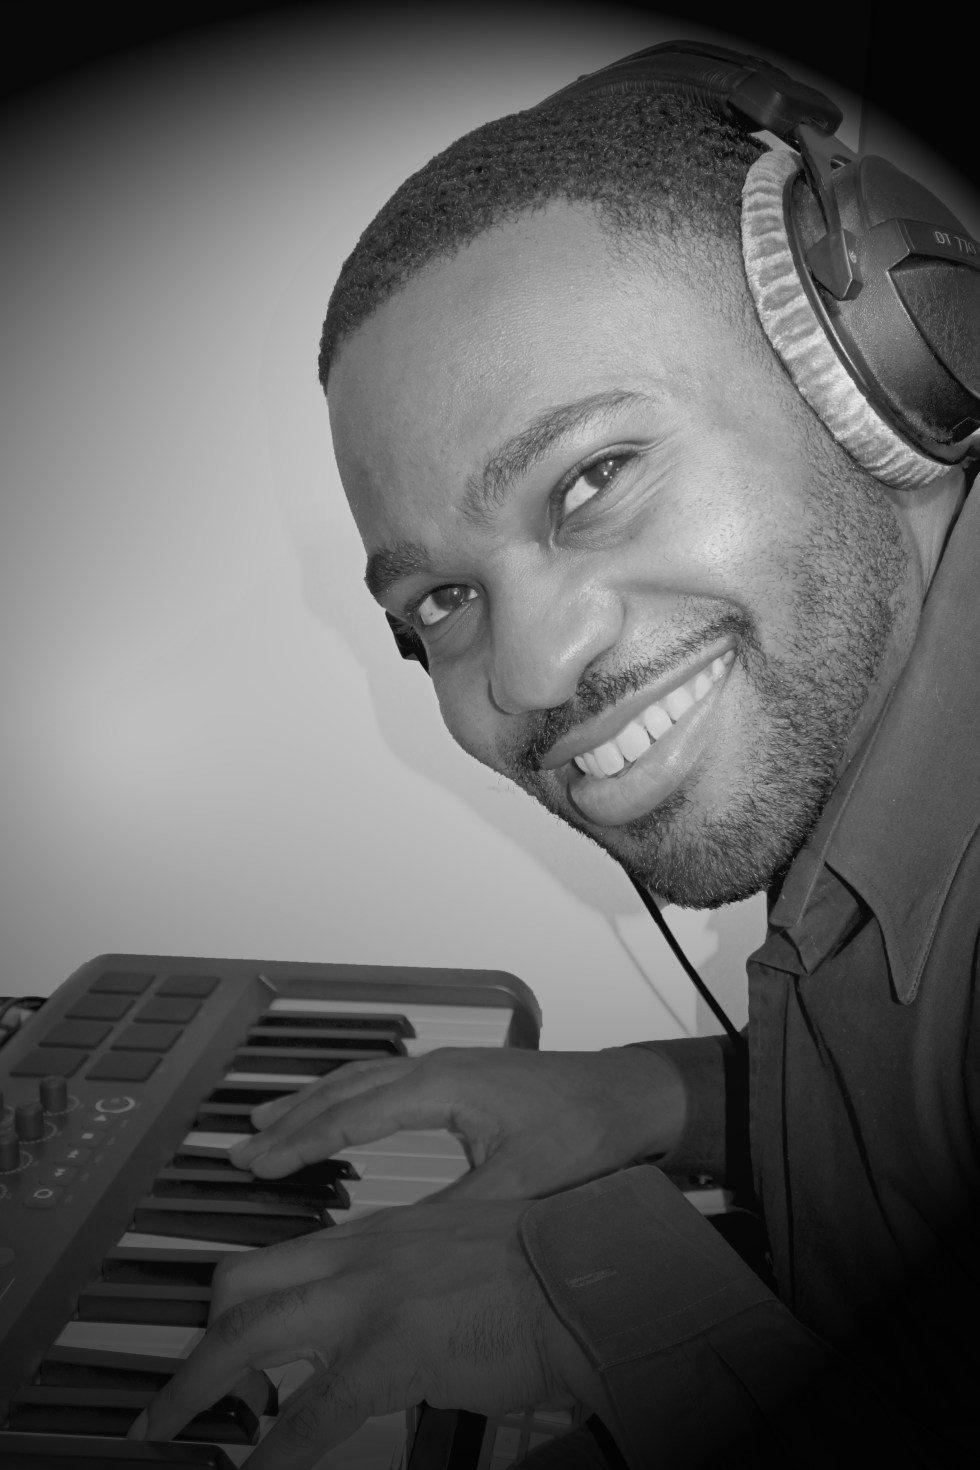 Tyrone Smith m-audio Keyboard Recording photo black and white we